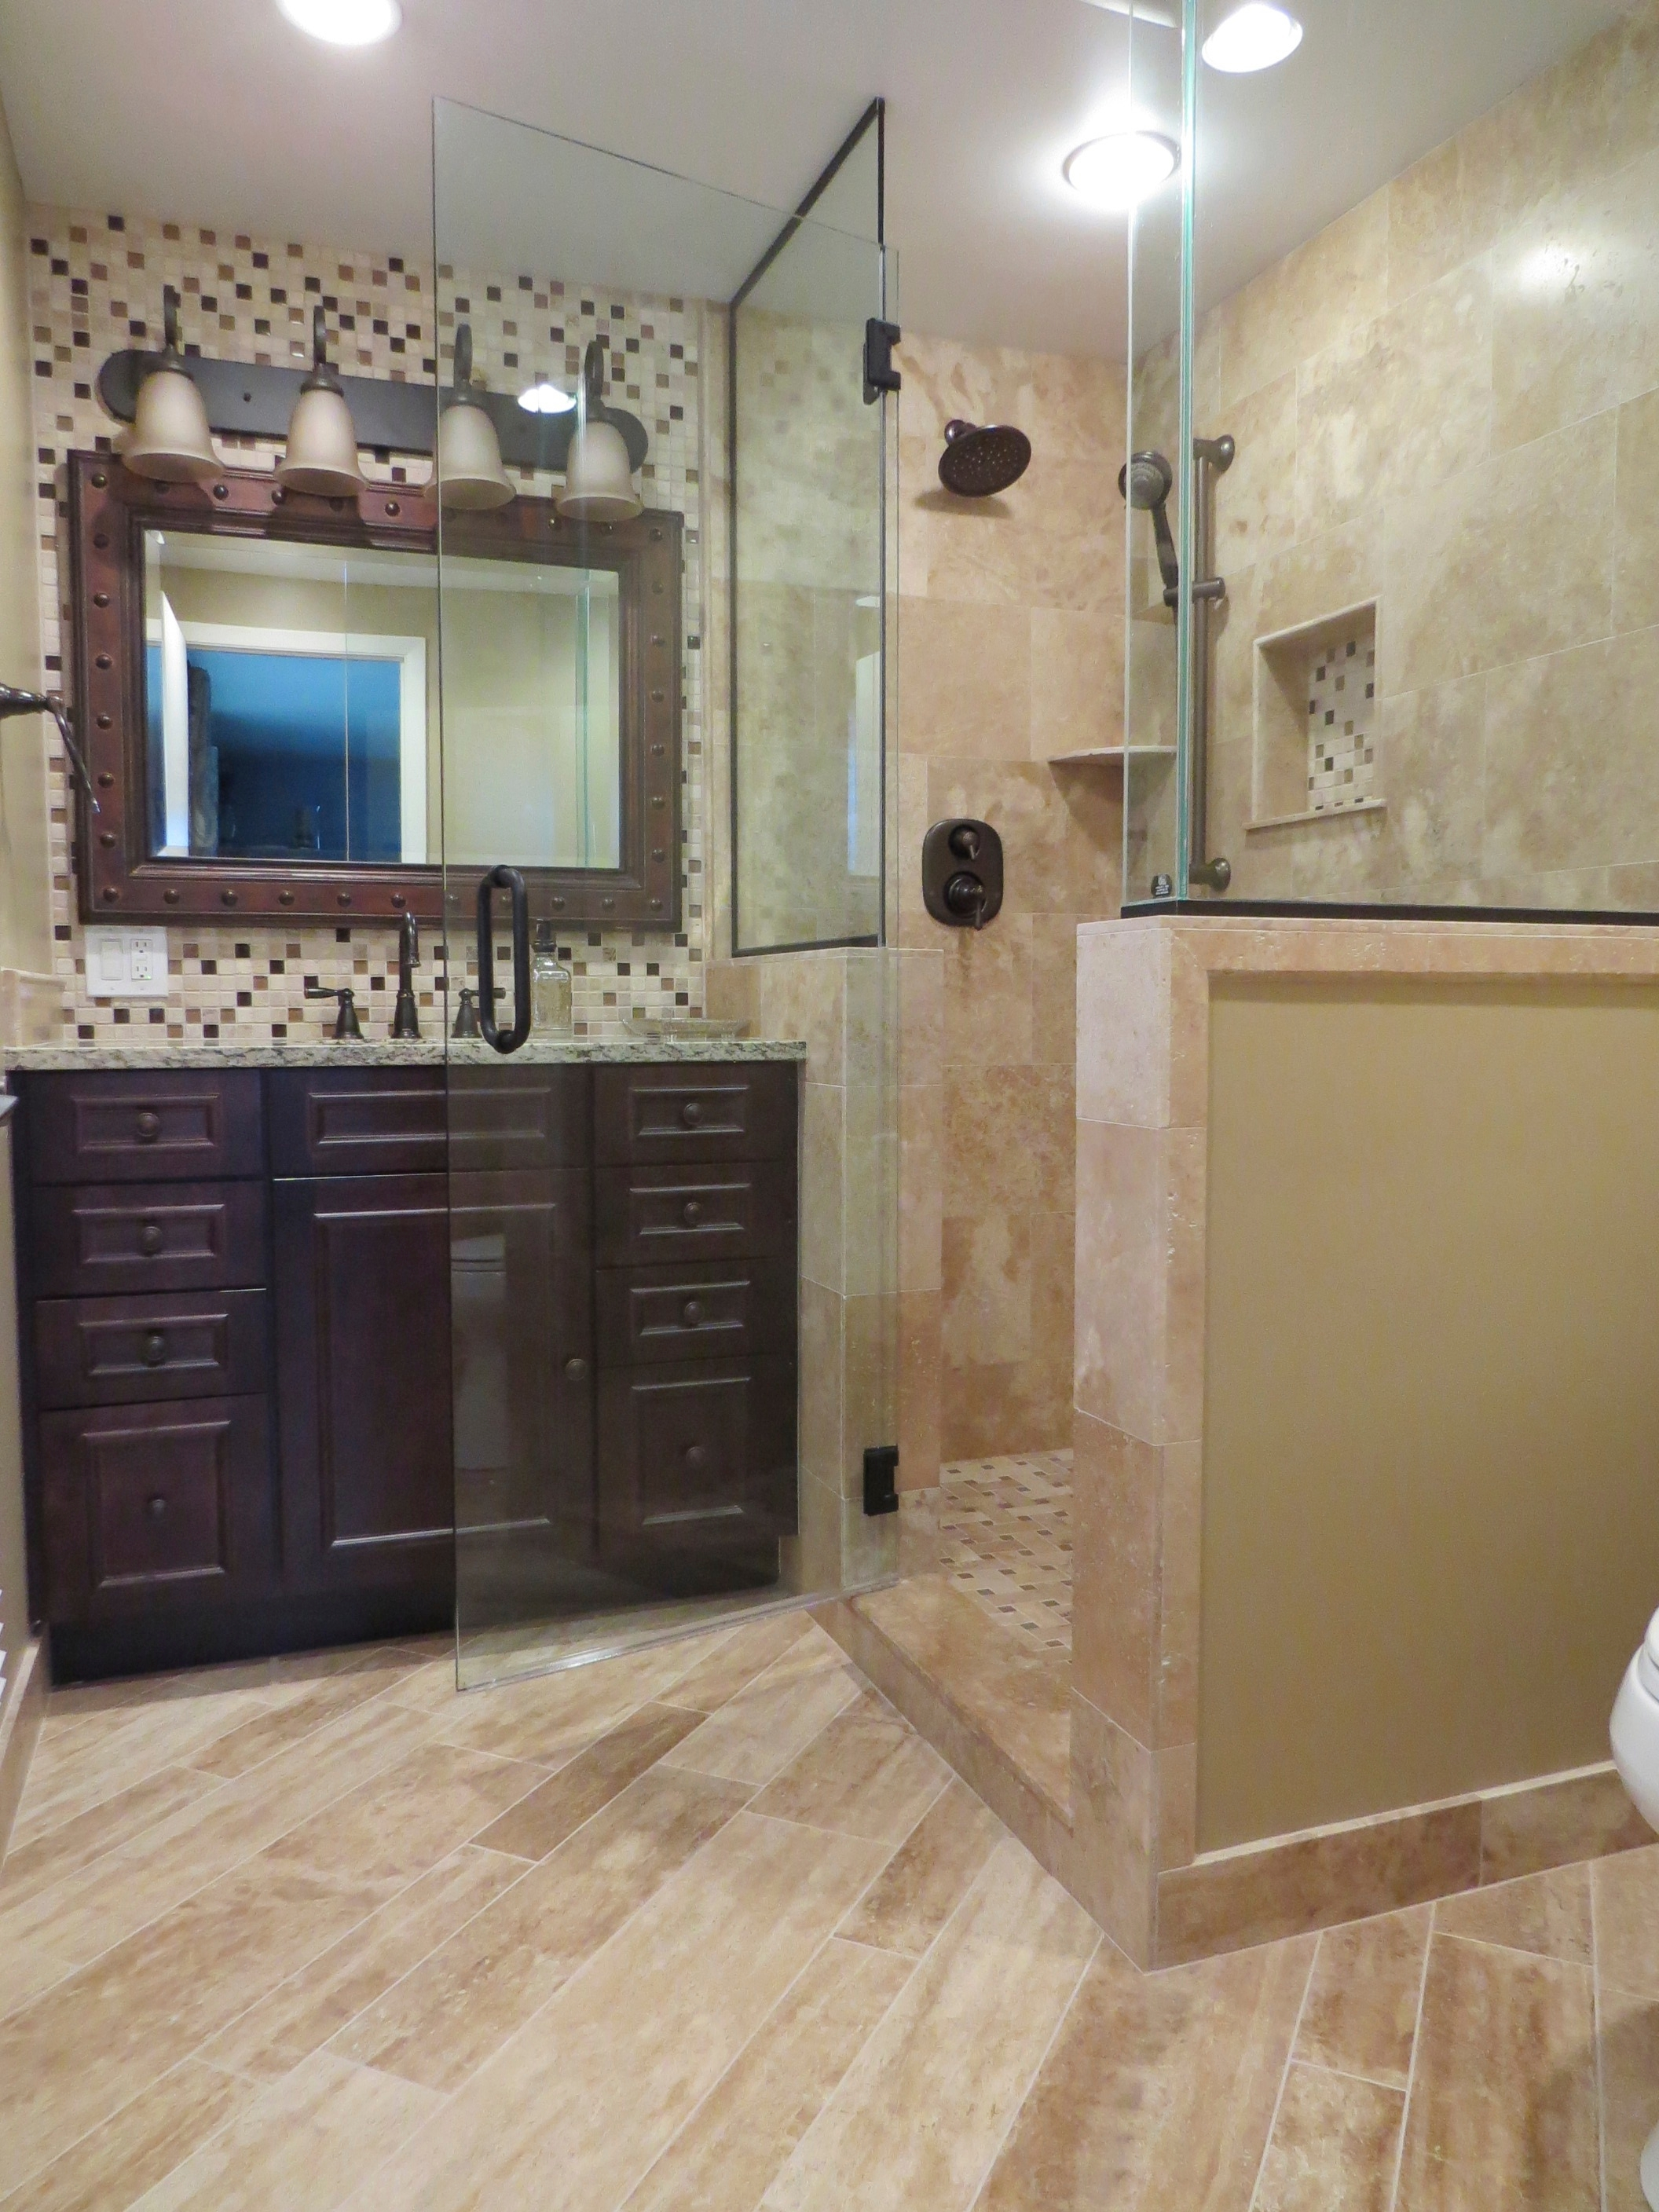 Tom 39 s best quality remodeling hoffman estates illinois for Bathroom remodel schaumburg il